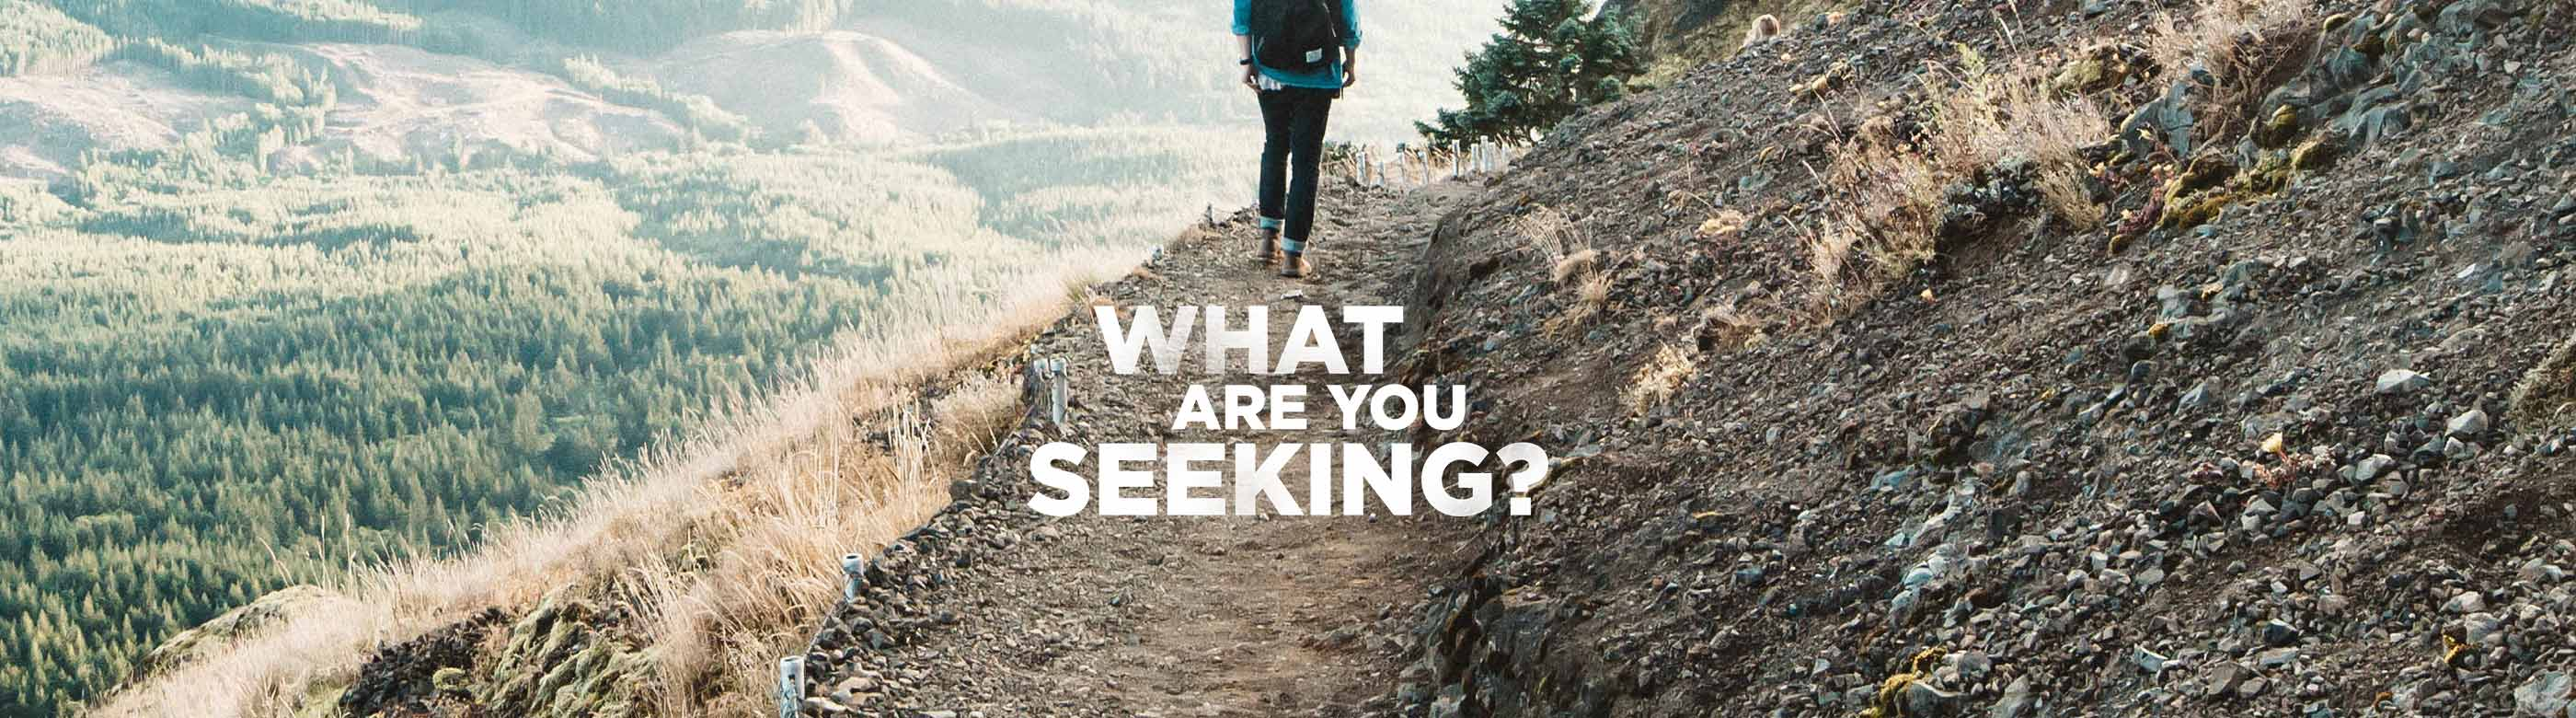 what-are-you-seeking-sermon-series-idea